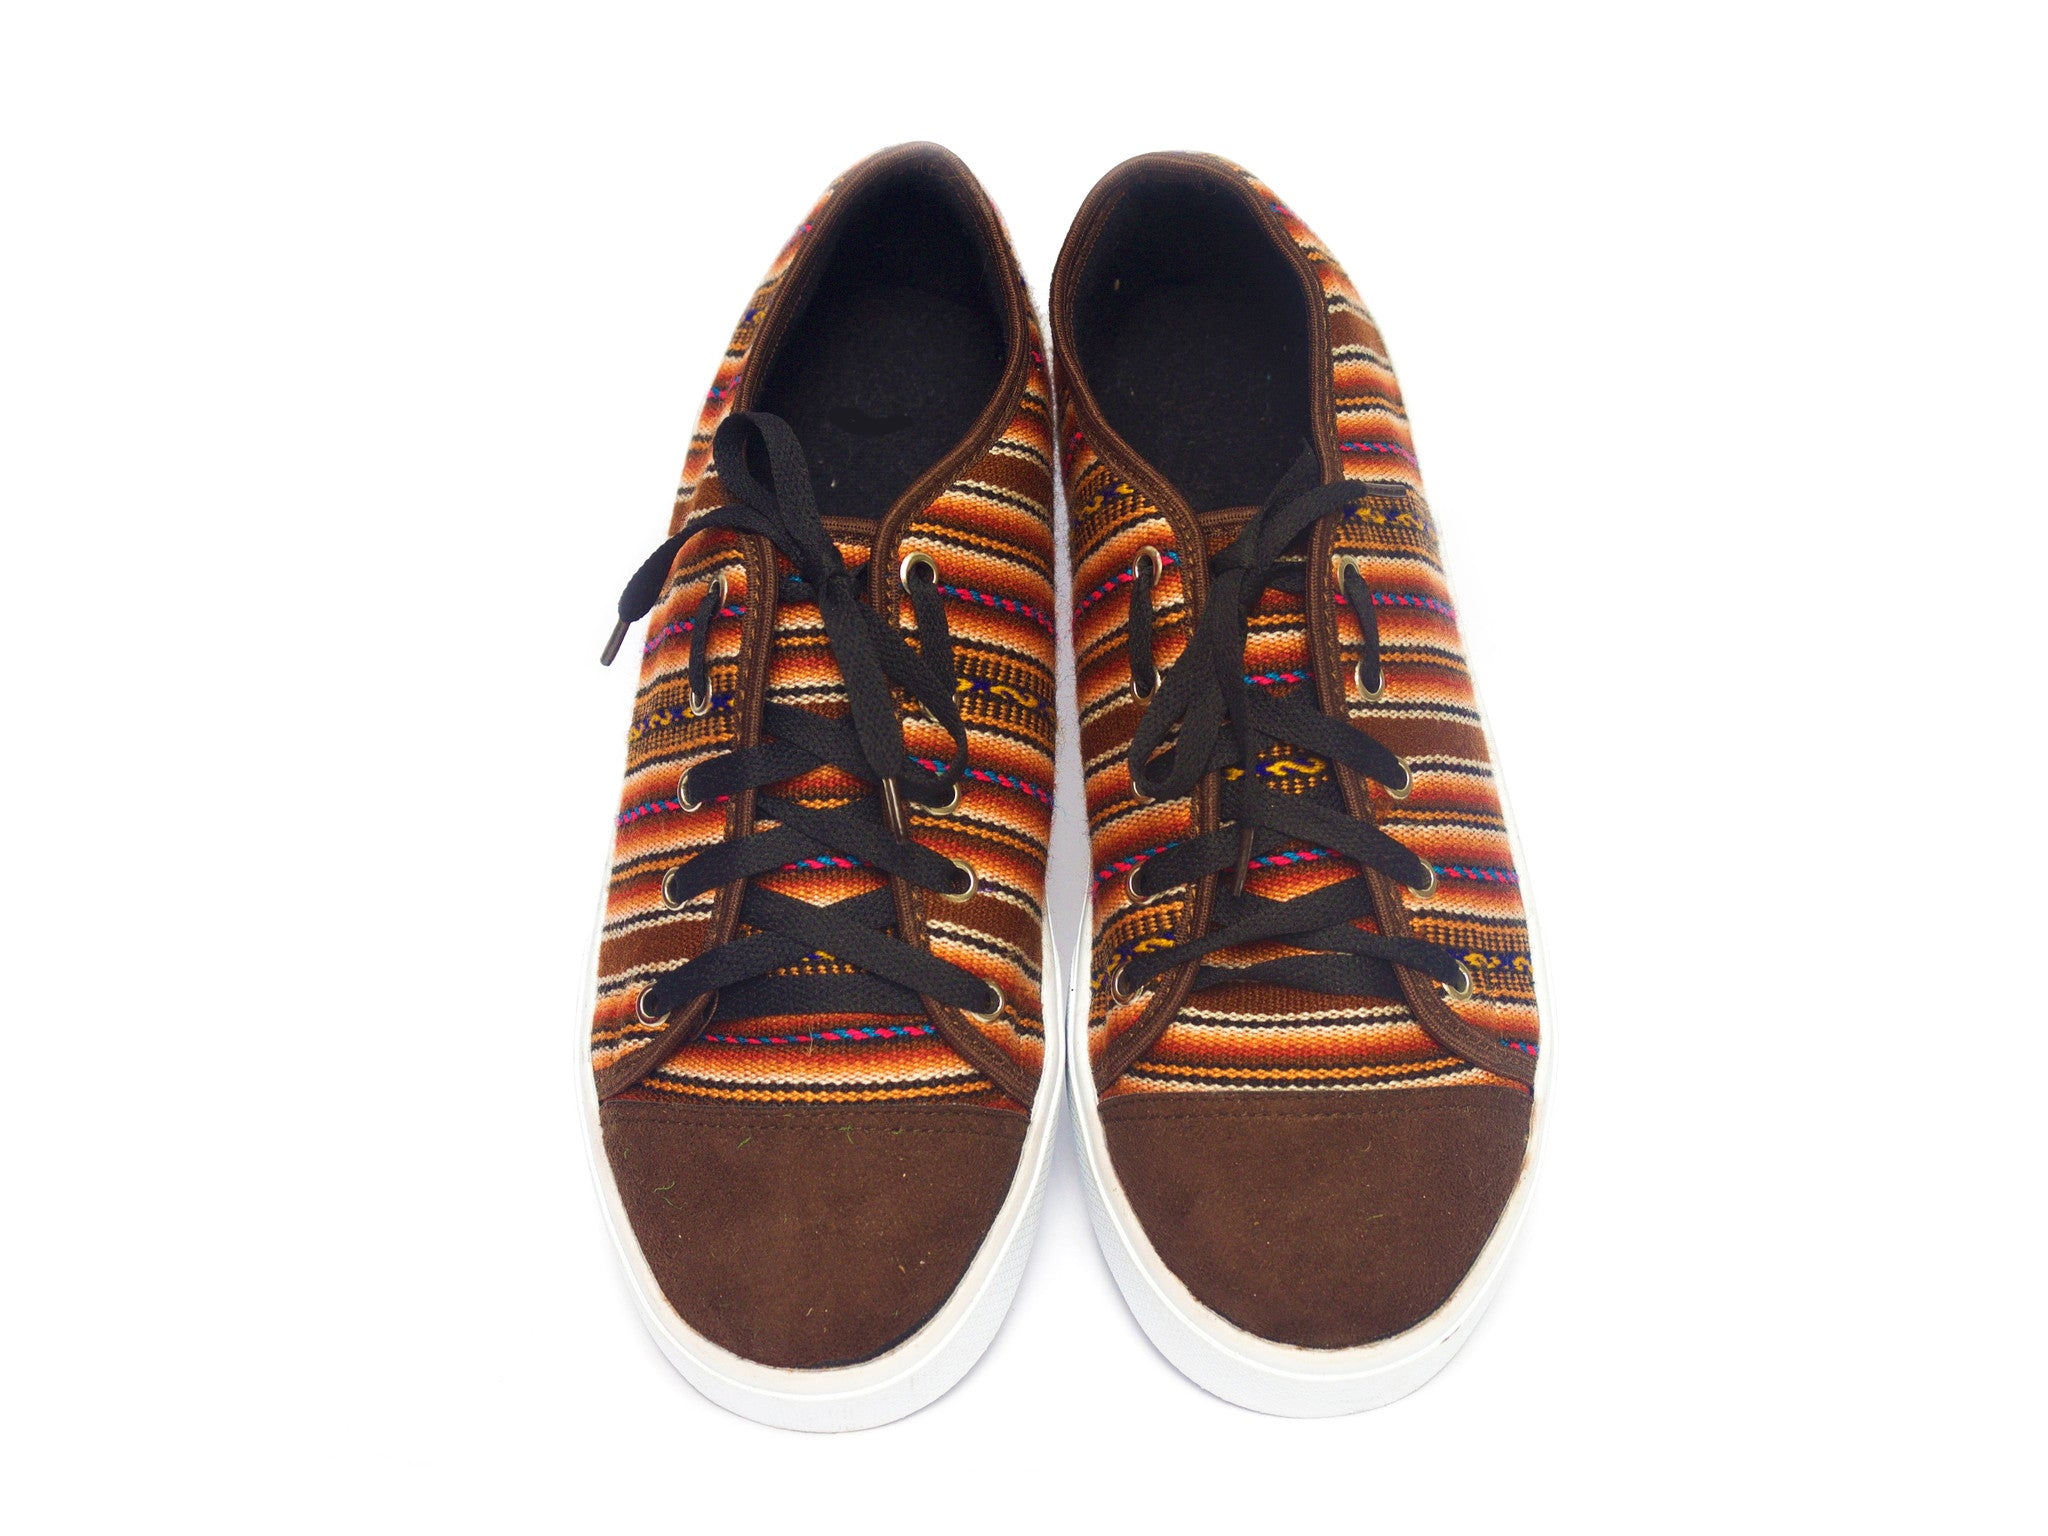 WOVEN LOW TOP CHAKI SNEAKERS - COFFEE